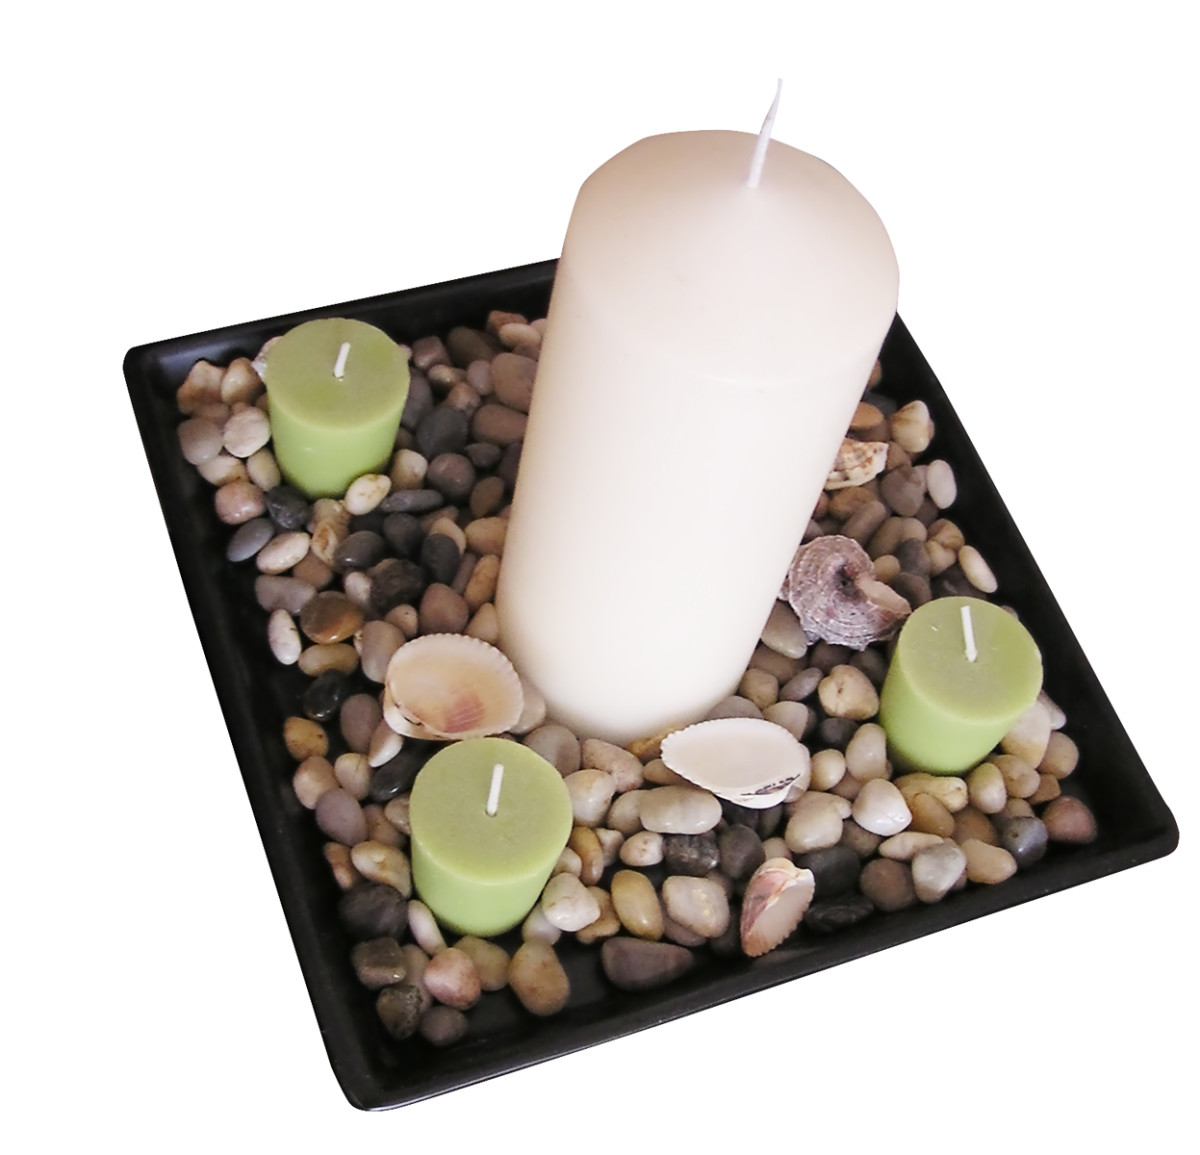 Candles are a great option and can be dressed up to suit your decor.